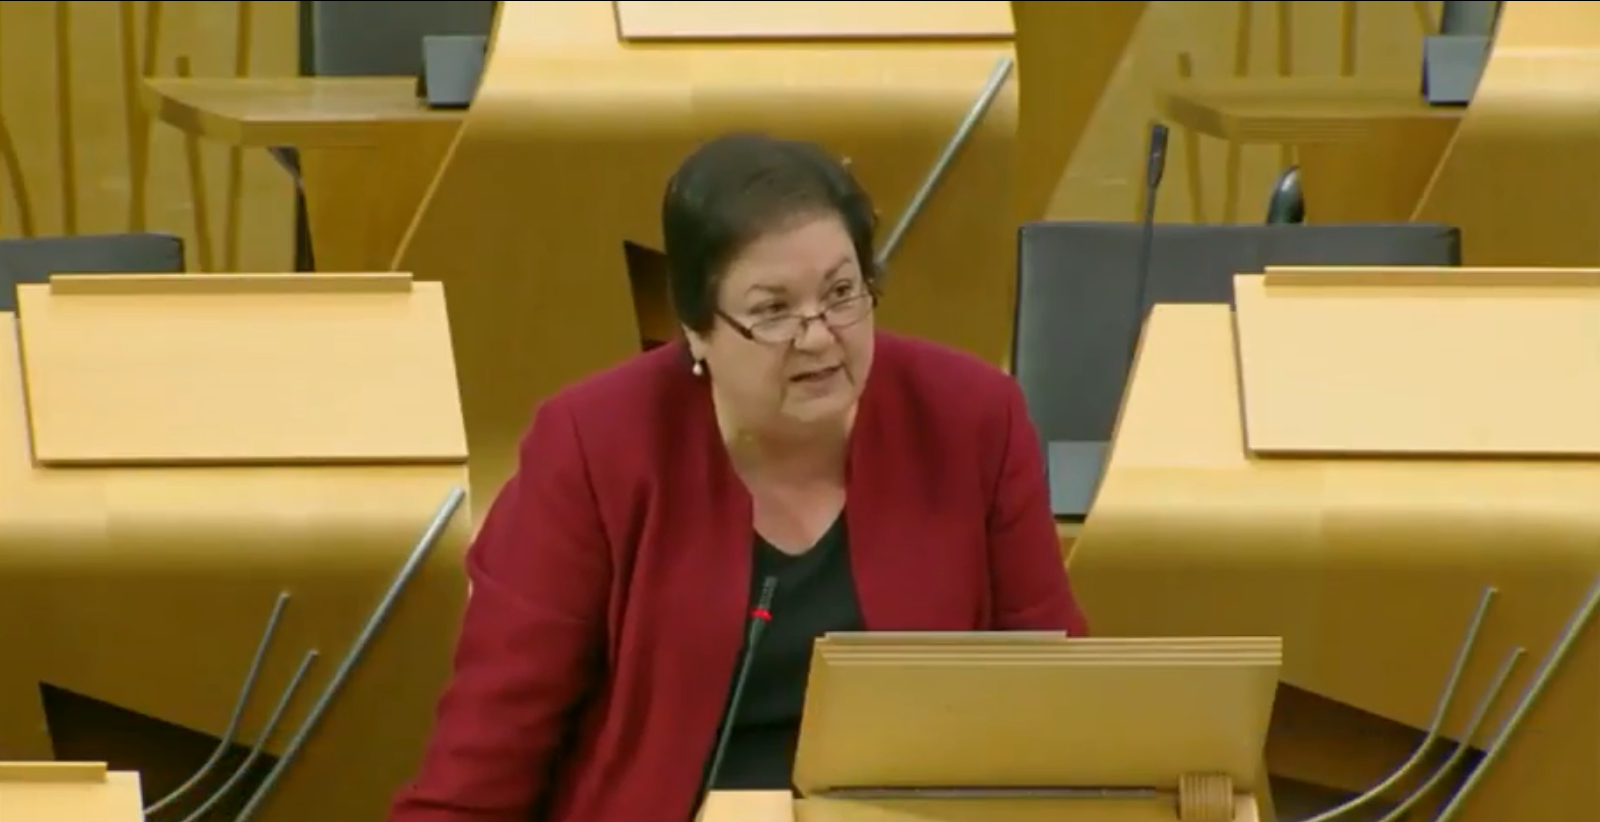 Jackie Baillie MSP addressed ministers at the Scottish Parliament on Thursday